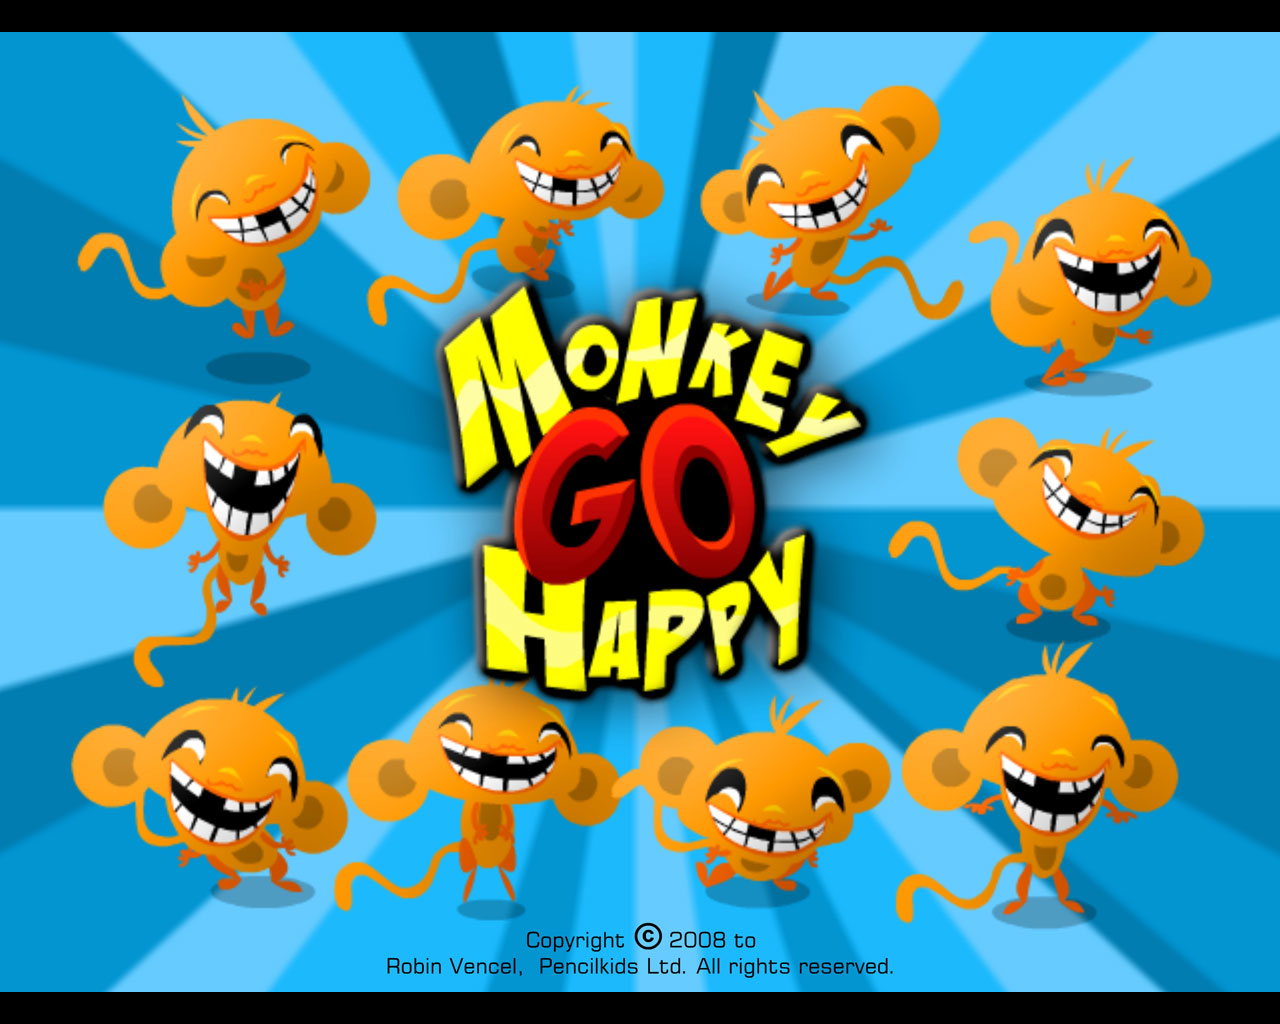 monkey go happy 7 games